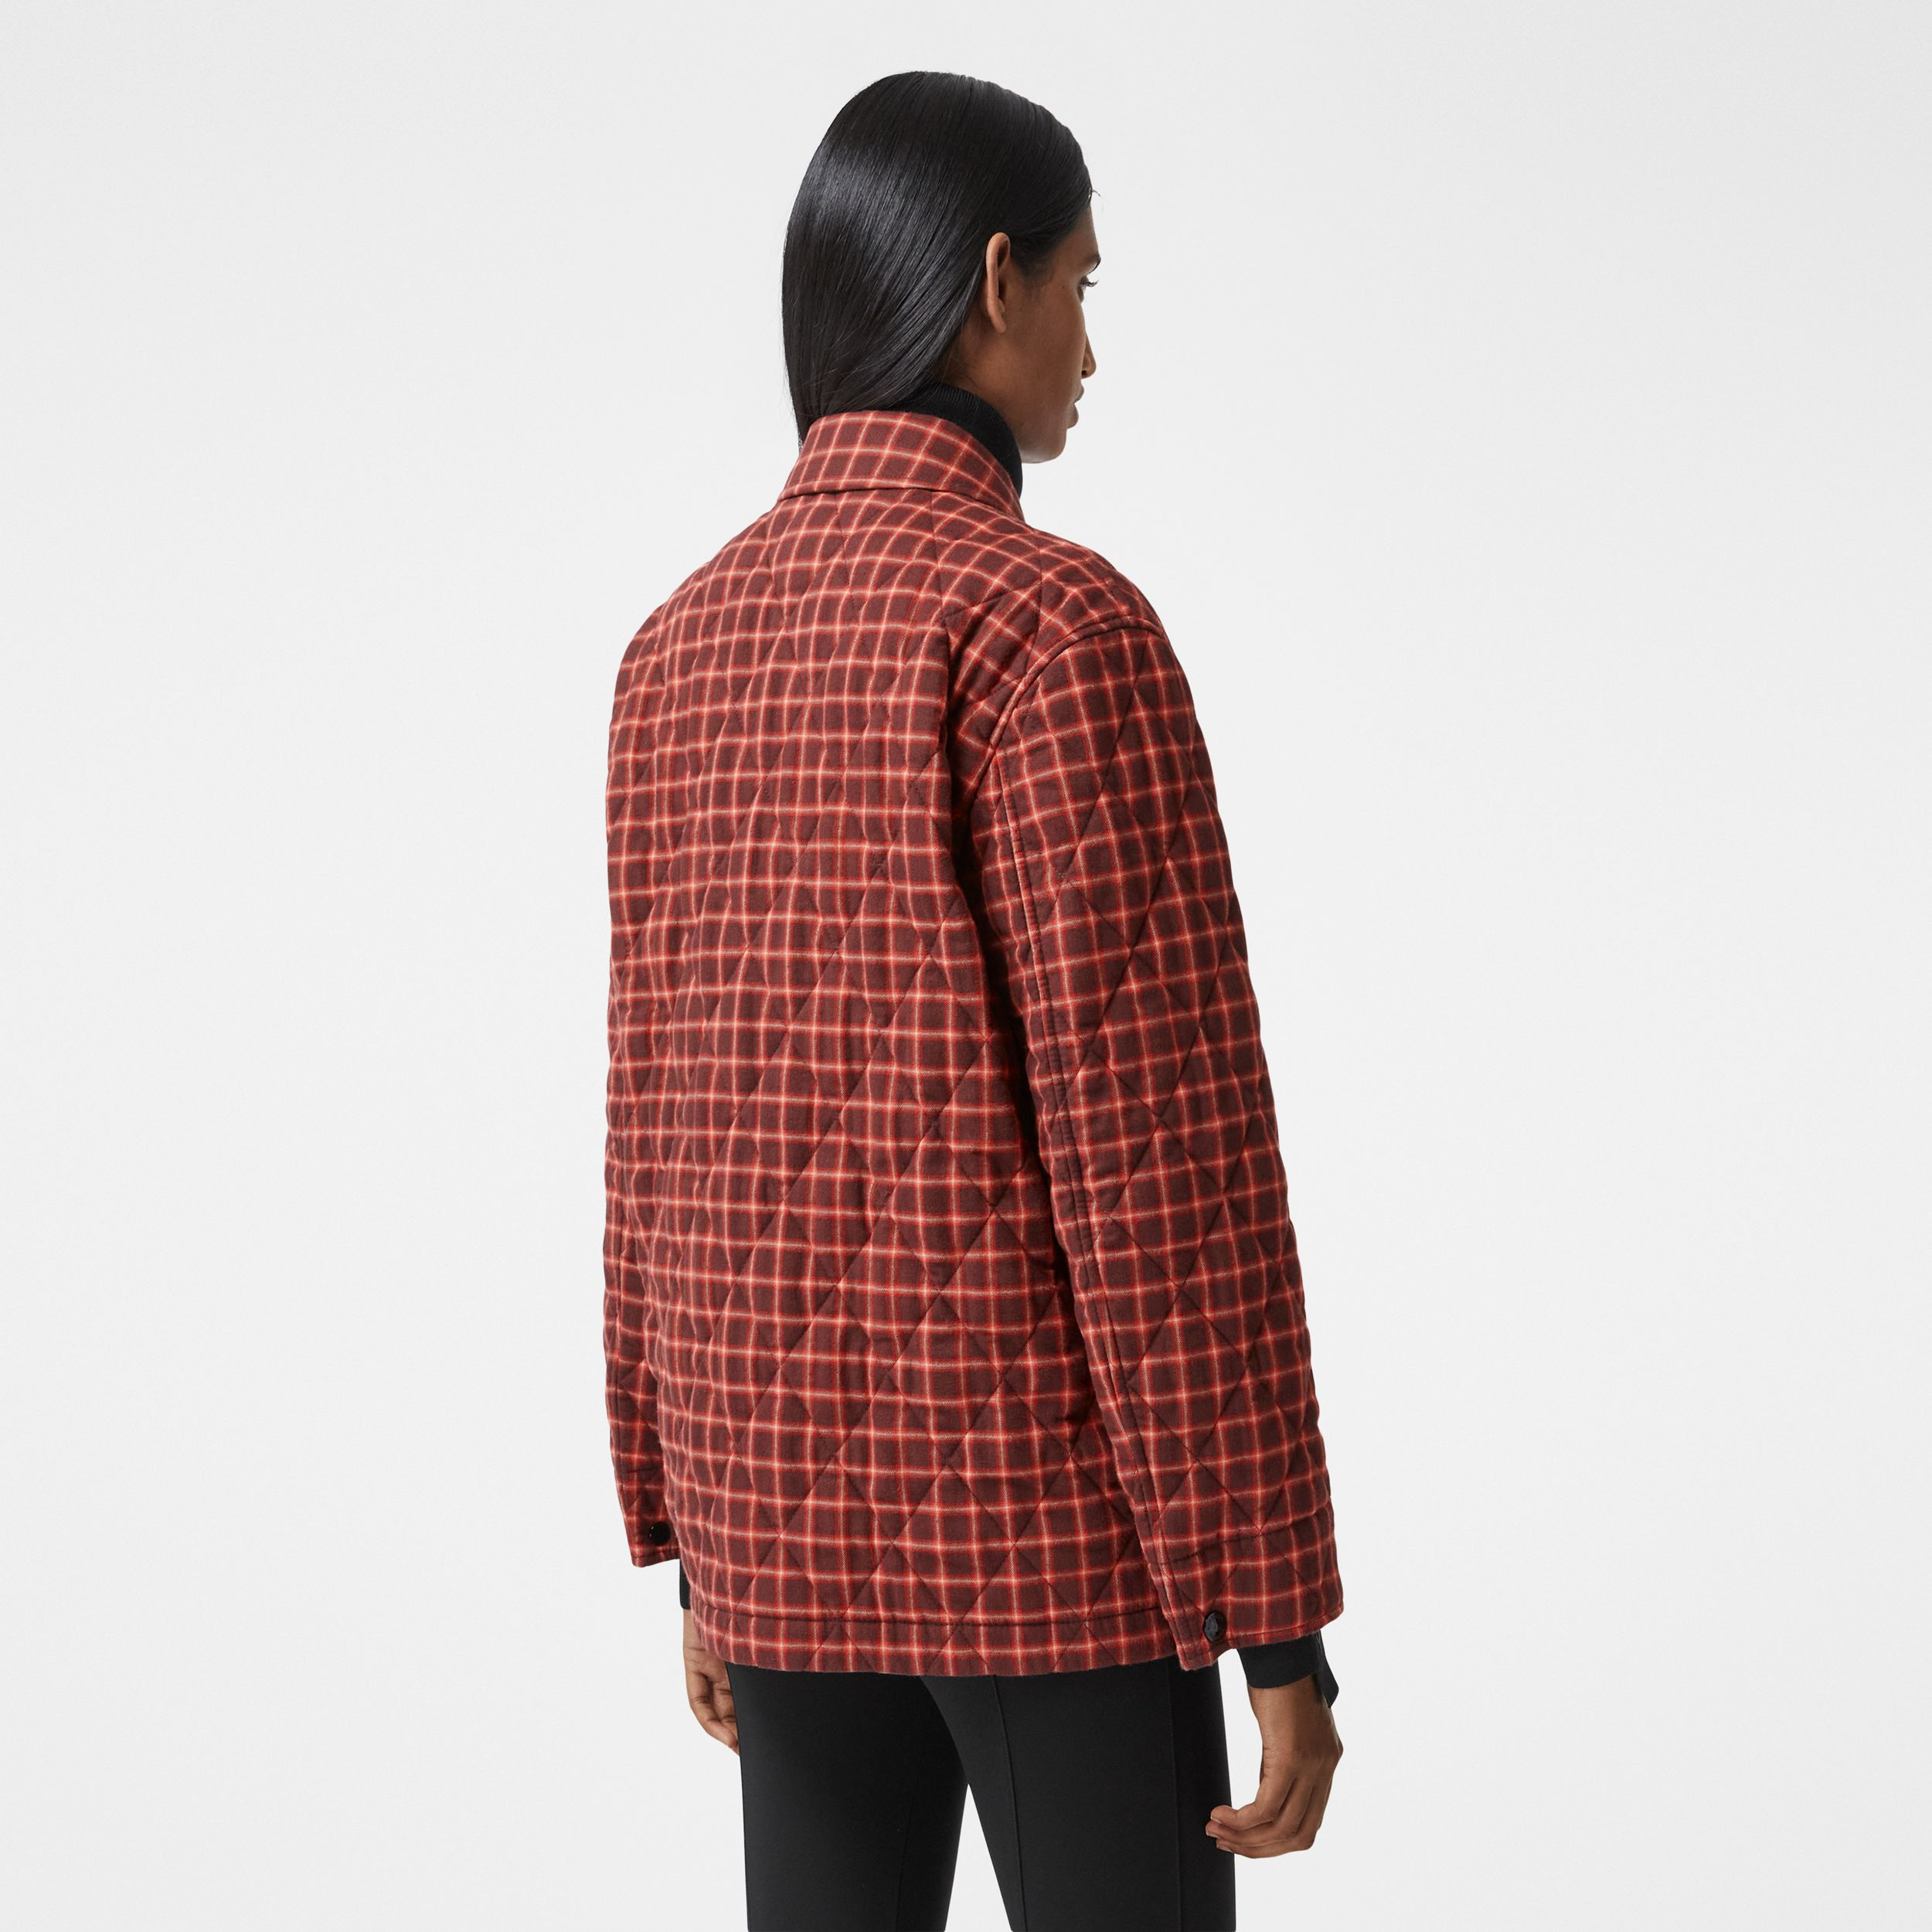 Contrast Pocket Check Cotton Flannel Overshirt in Burgundy - Women | Burberry - 3